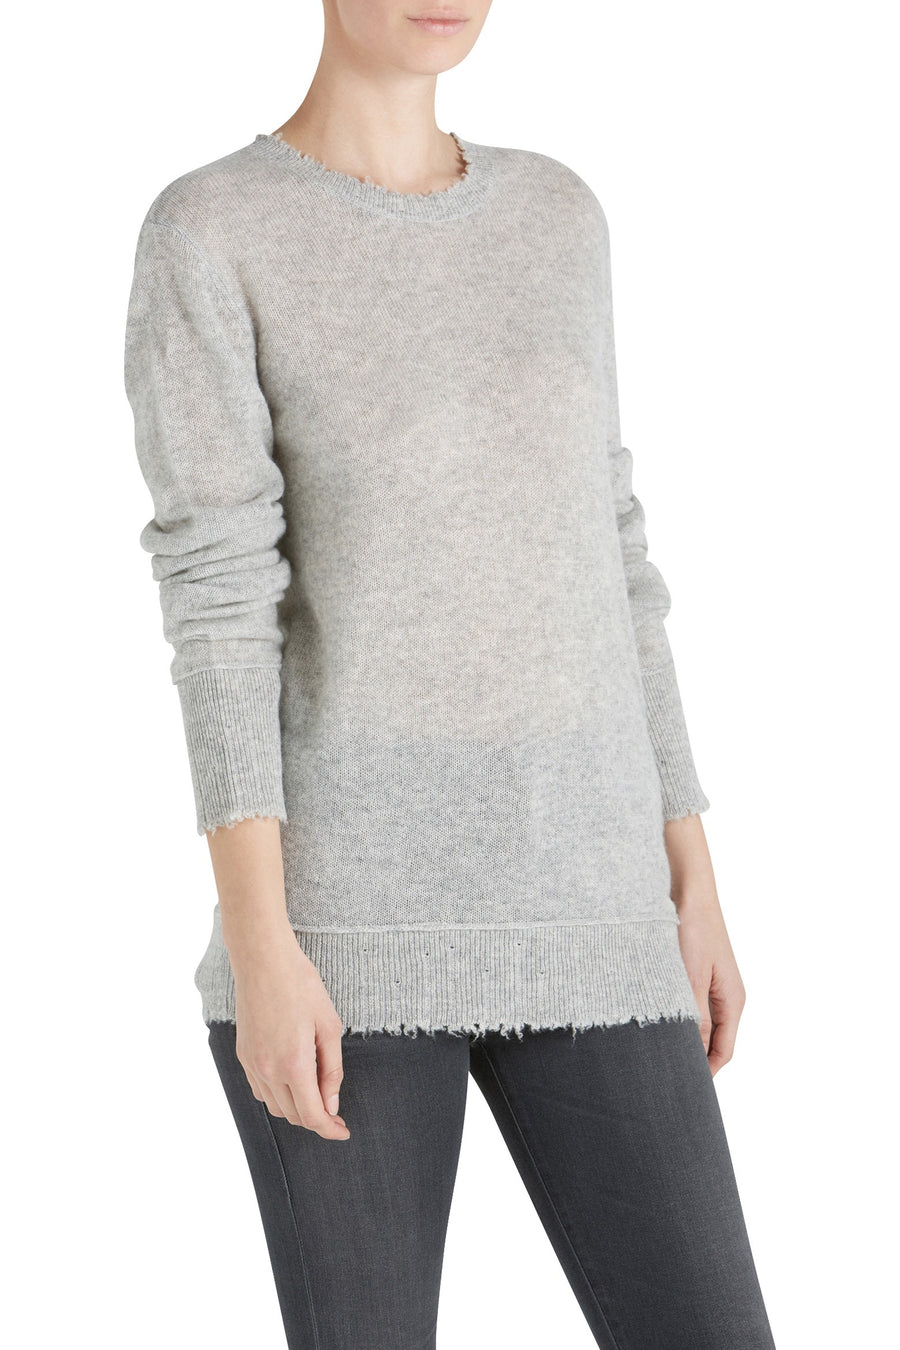 DISTRESSED EDGE SWEATER